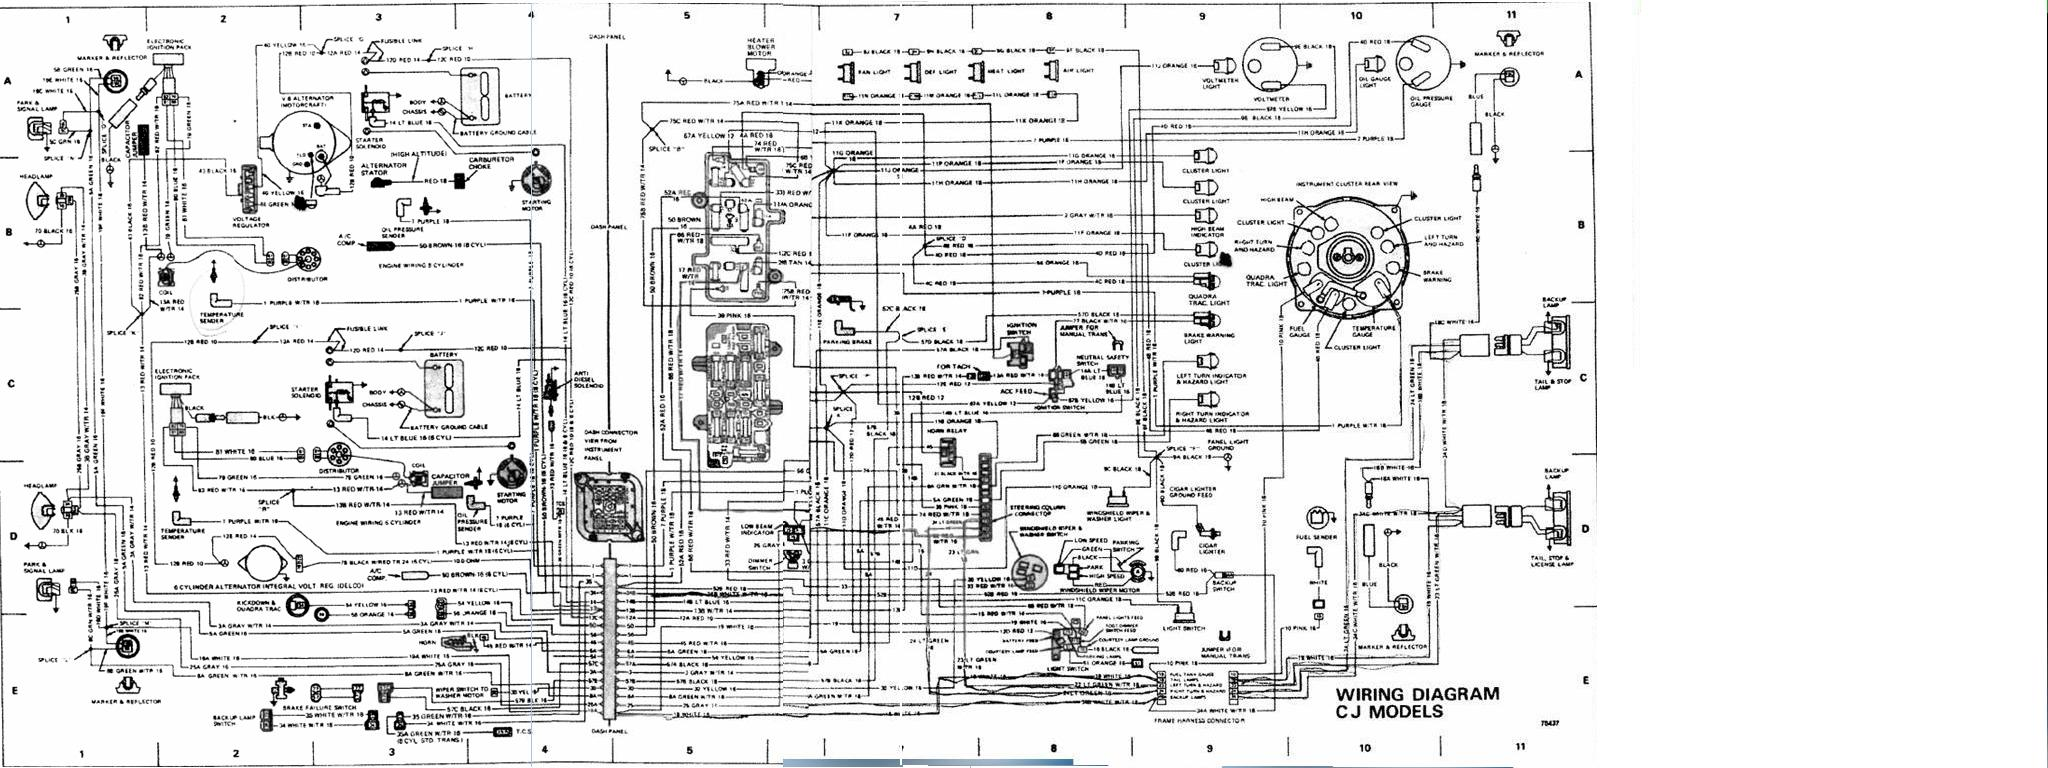 jeep cj7 light wiring diagram chronton diagram base website ...  valborberaespinti